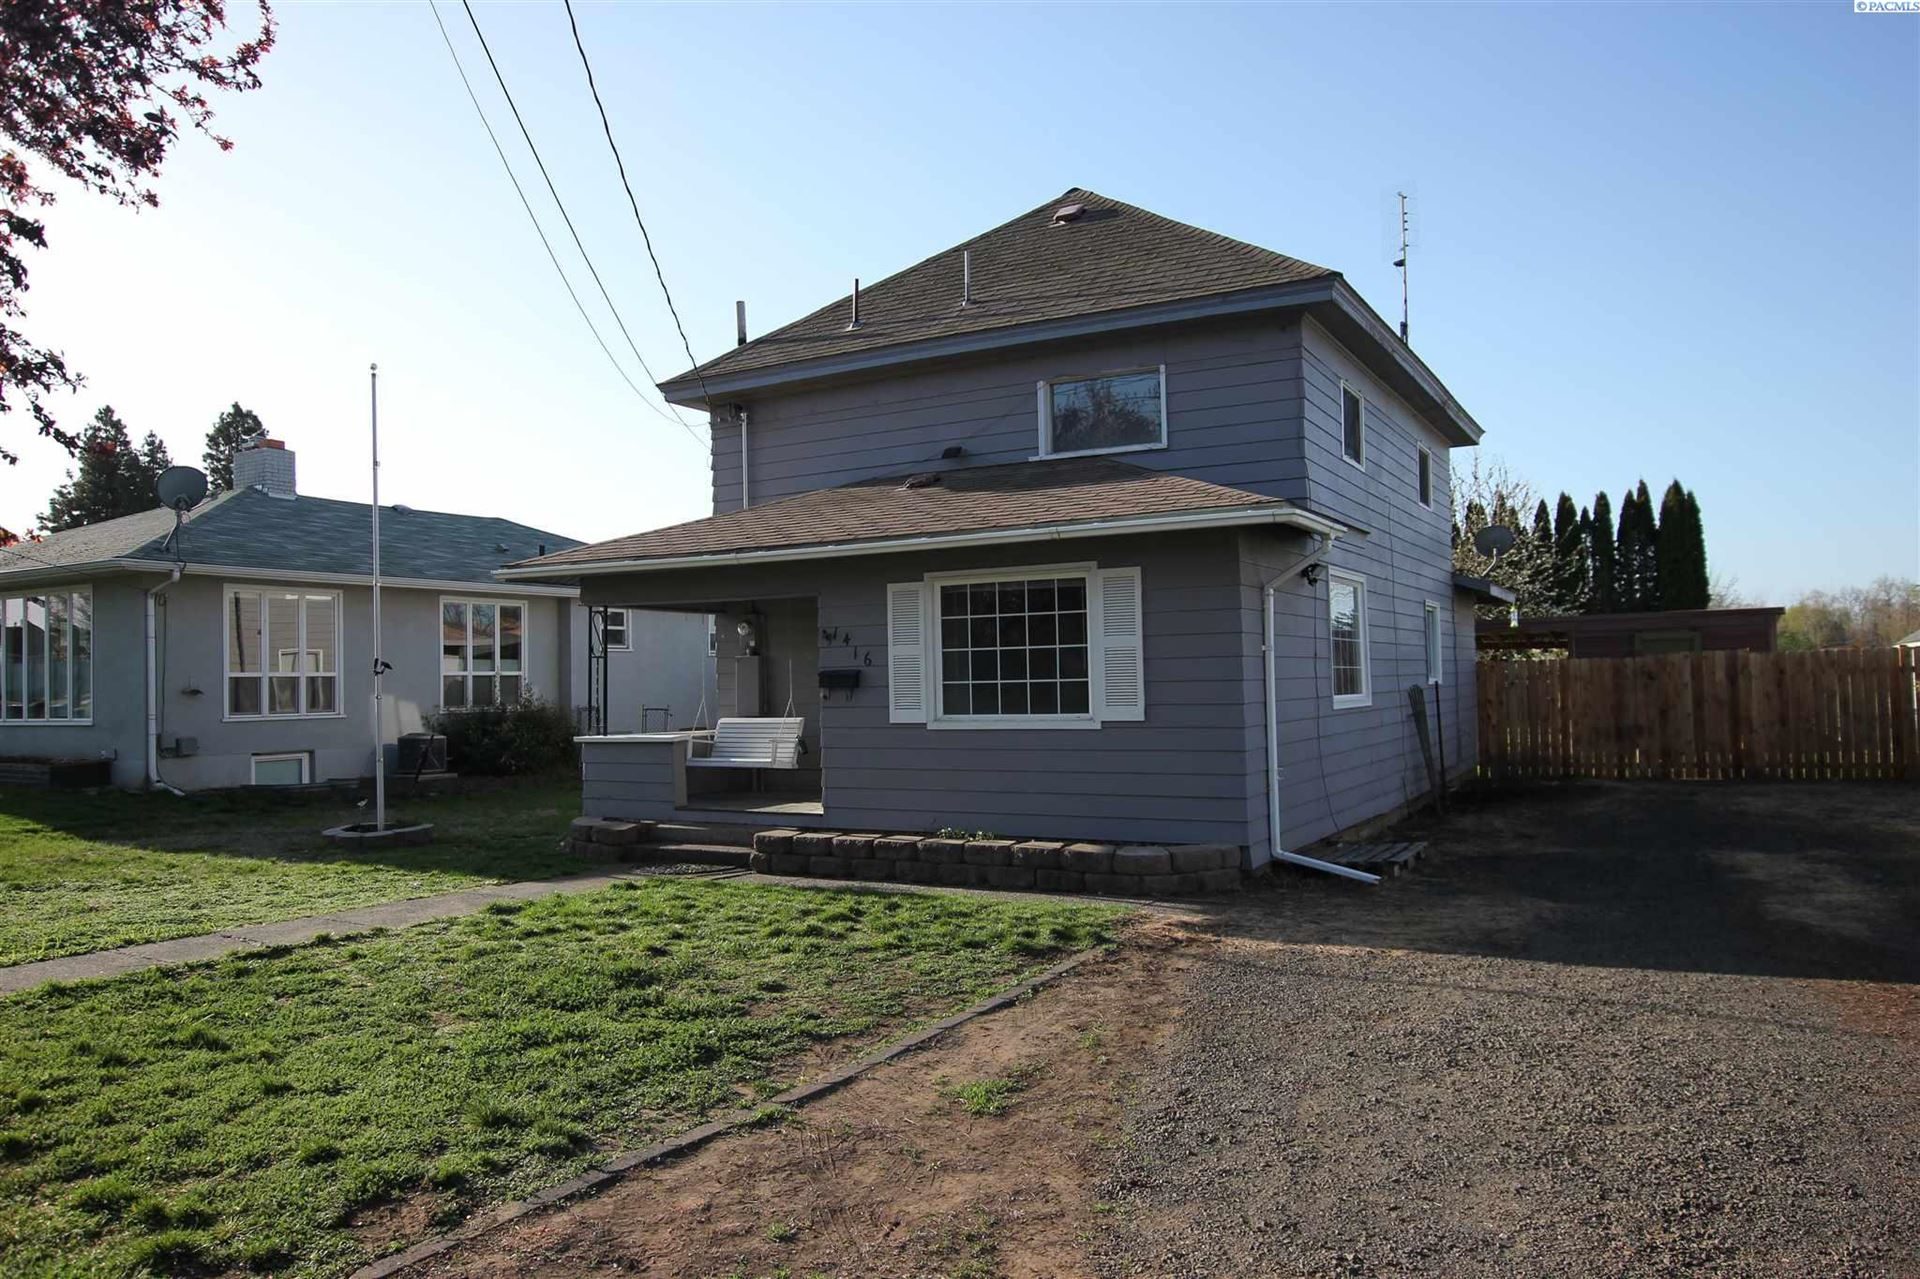 Photo of 1416 Ruth St, Walla Walla, WA 99362 (MLS # 252841)